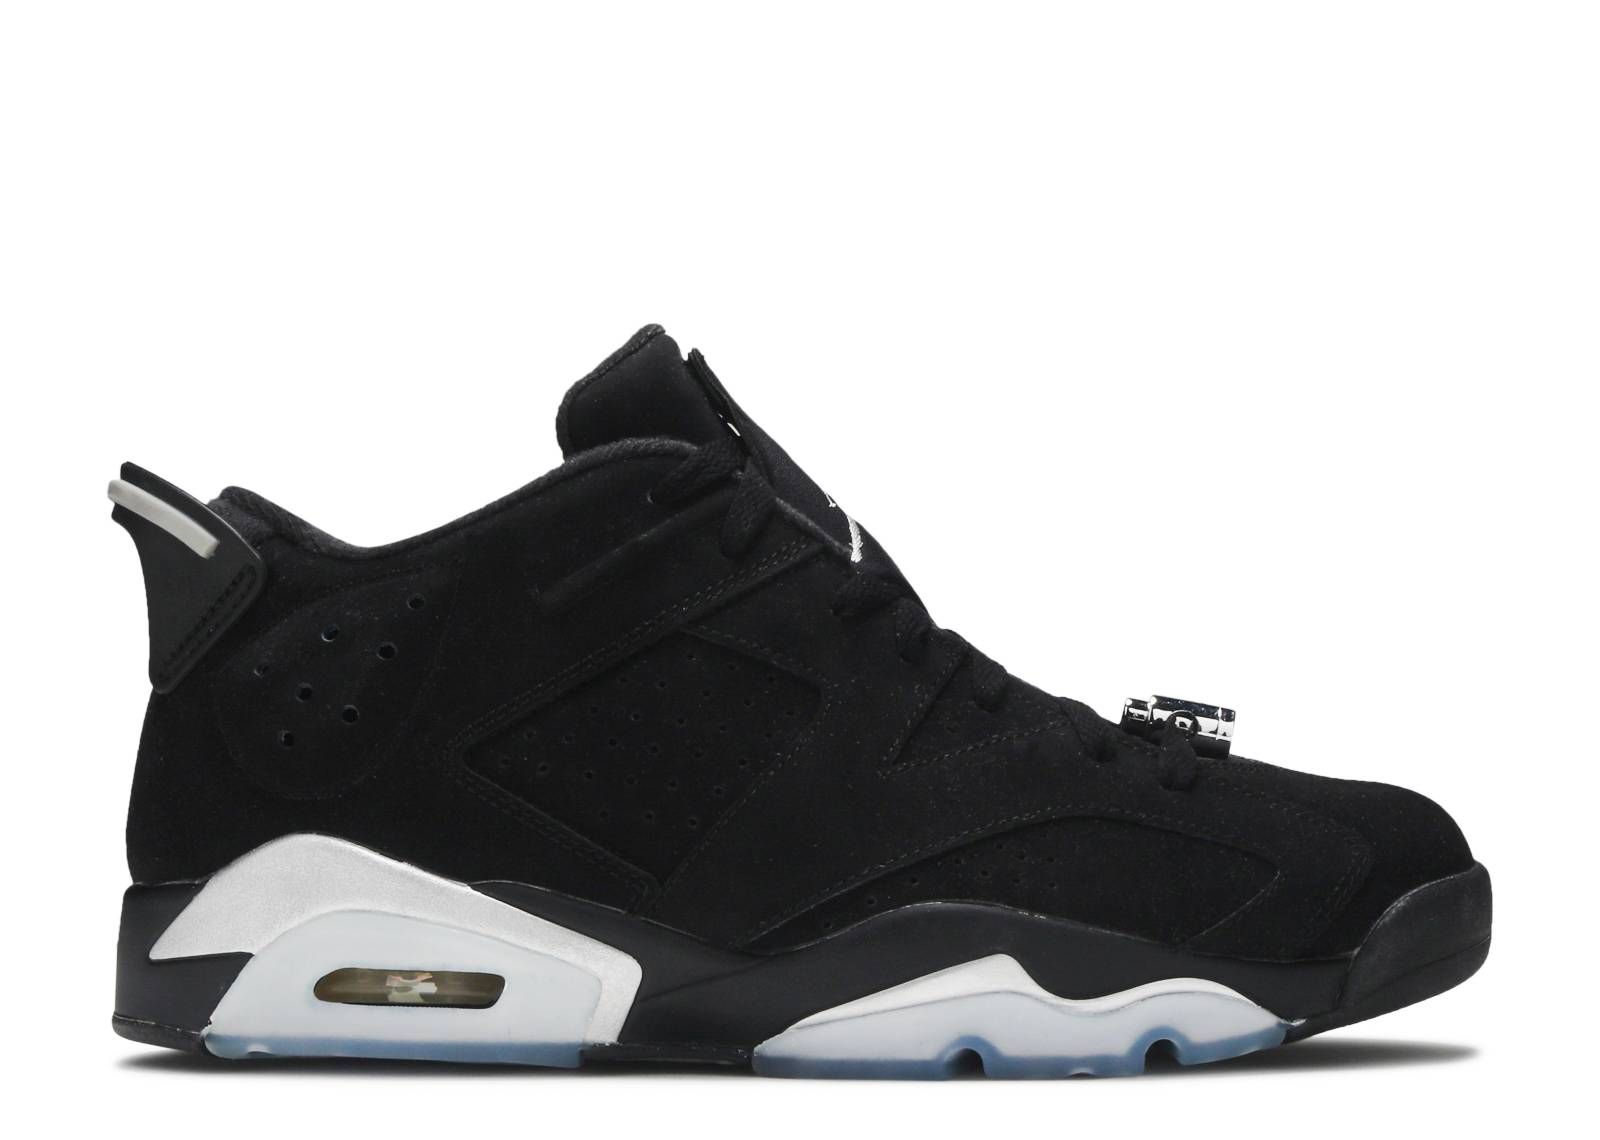 air jordan 6 retro low black\/metallic silver